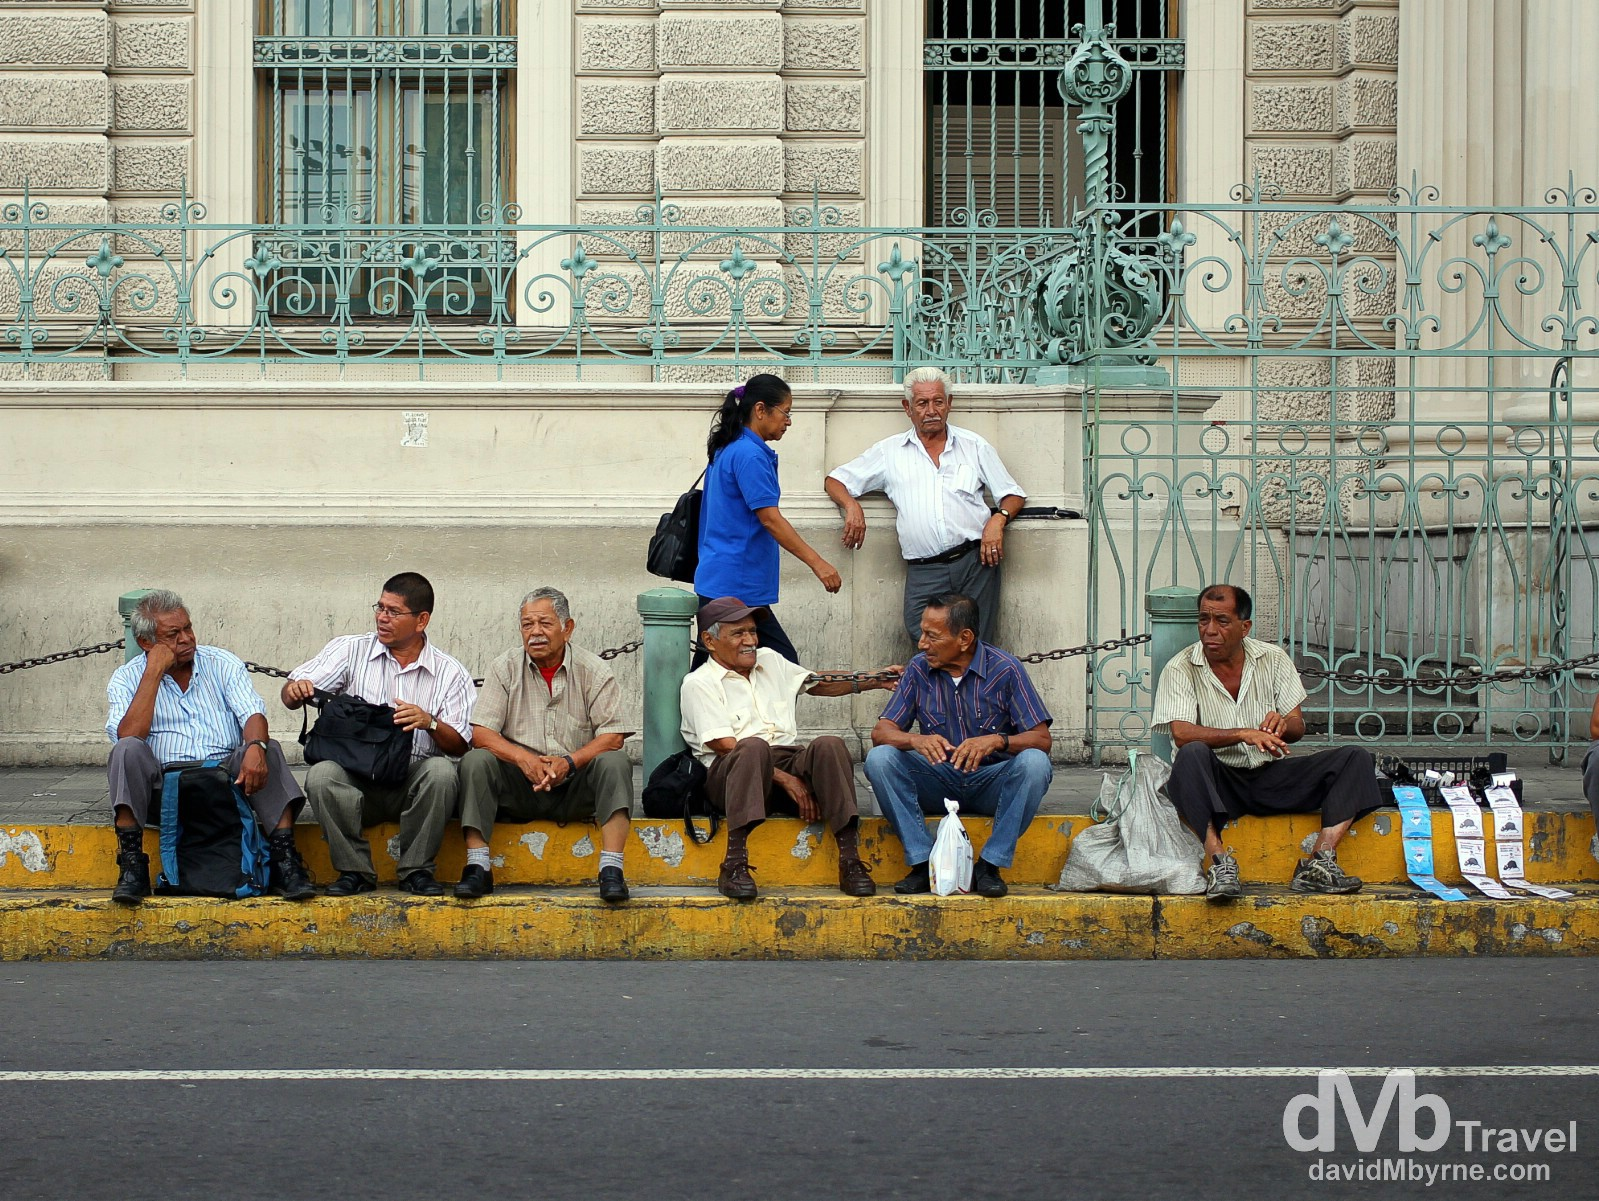 Sitting outside Palacio Nacional, San Salvador, El Salvador, Central America. June 3rd 2013.